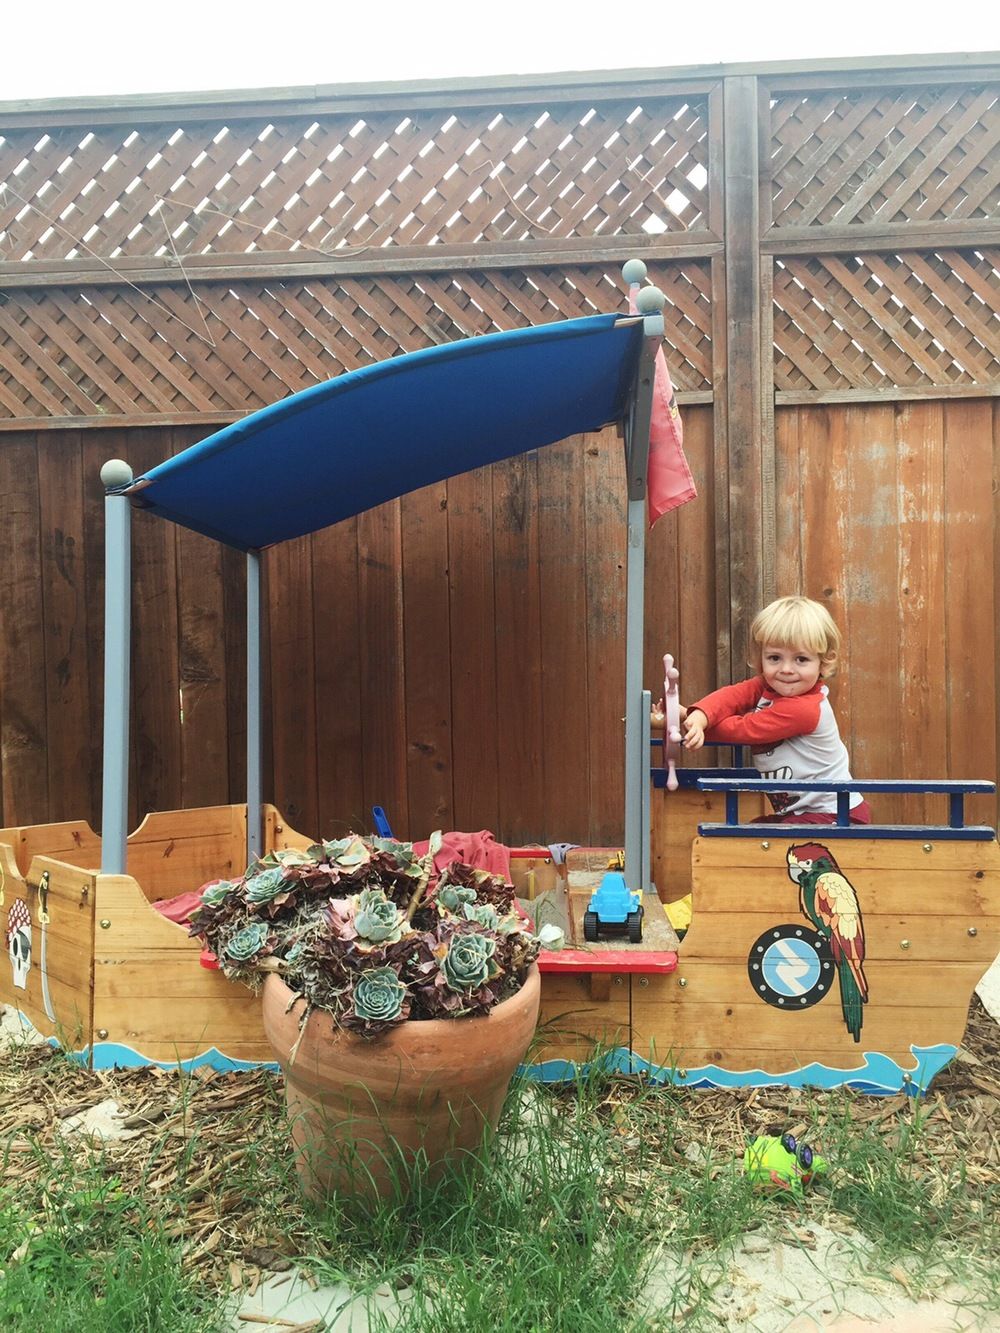 Jimmy's pirate ship playhouse, next to some California succulents.